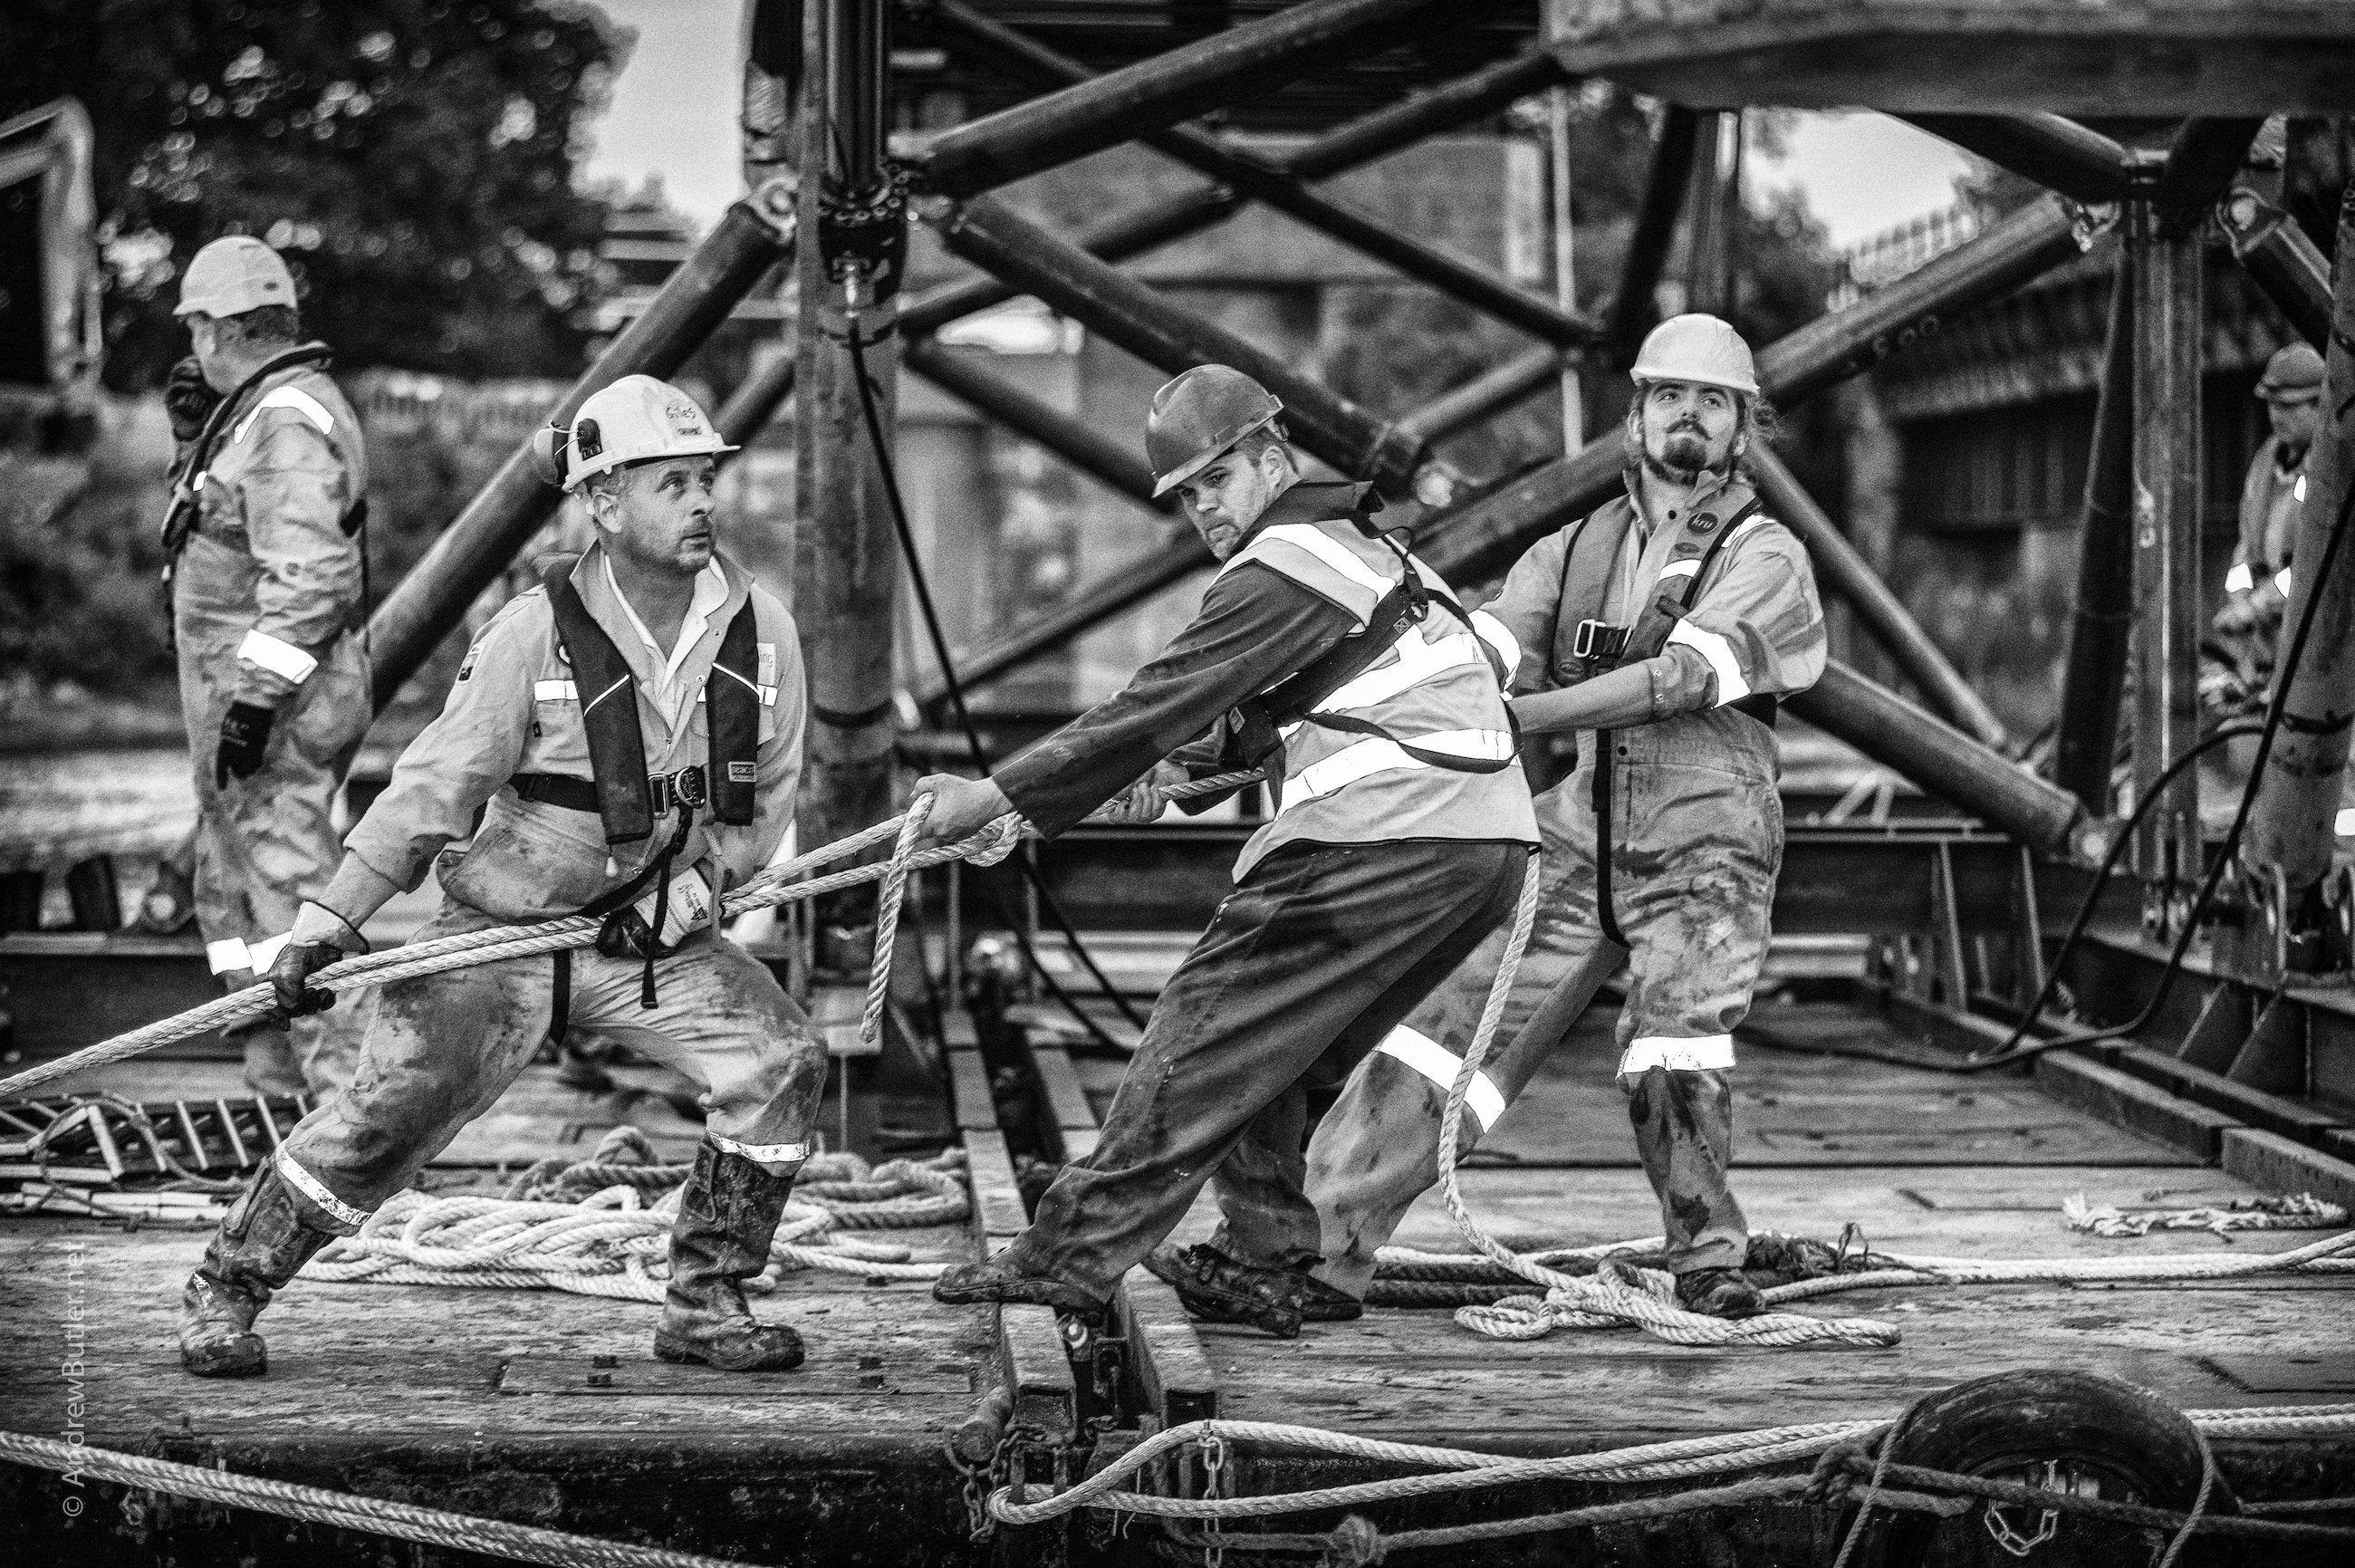 This photograph is a black and white of engineers workers working on a bridge what is captured in this photograph is the hard work and dedication people